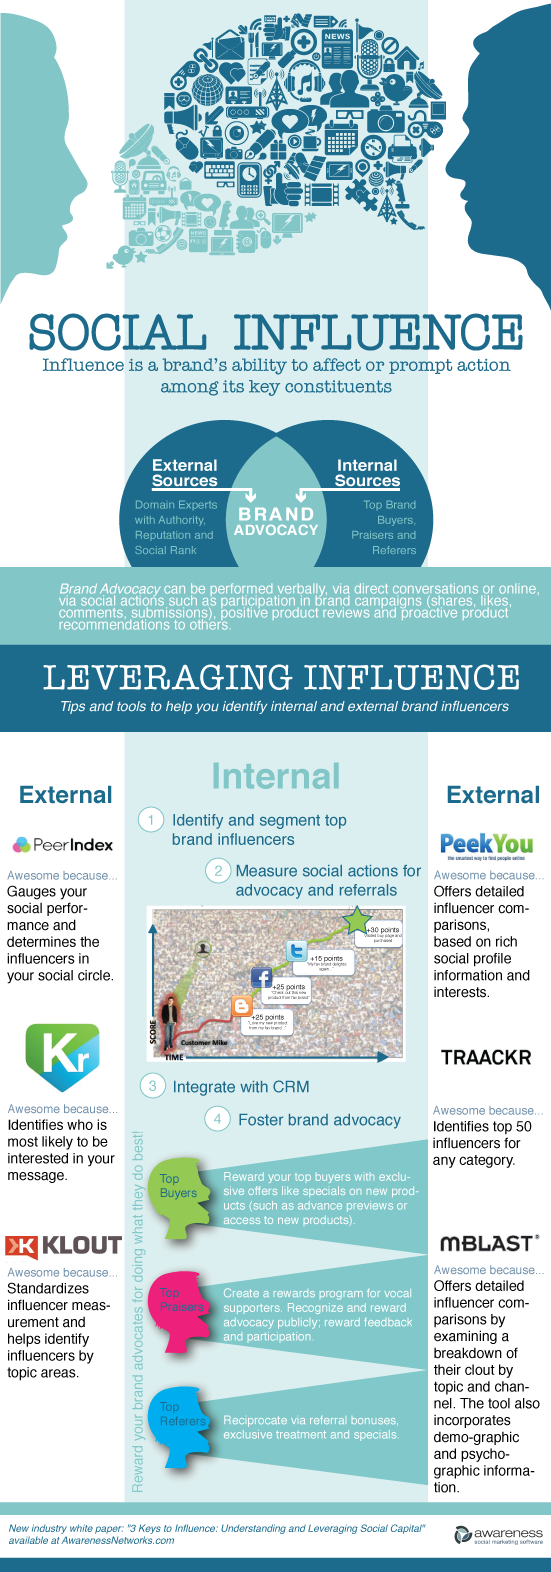 Leveraging Internal and External Social Influence